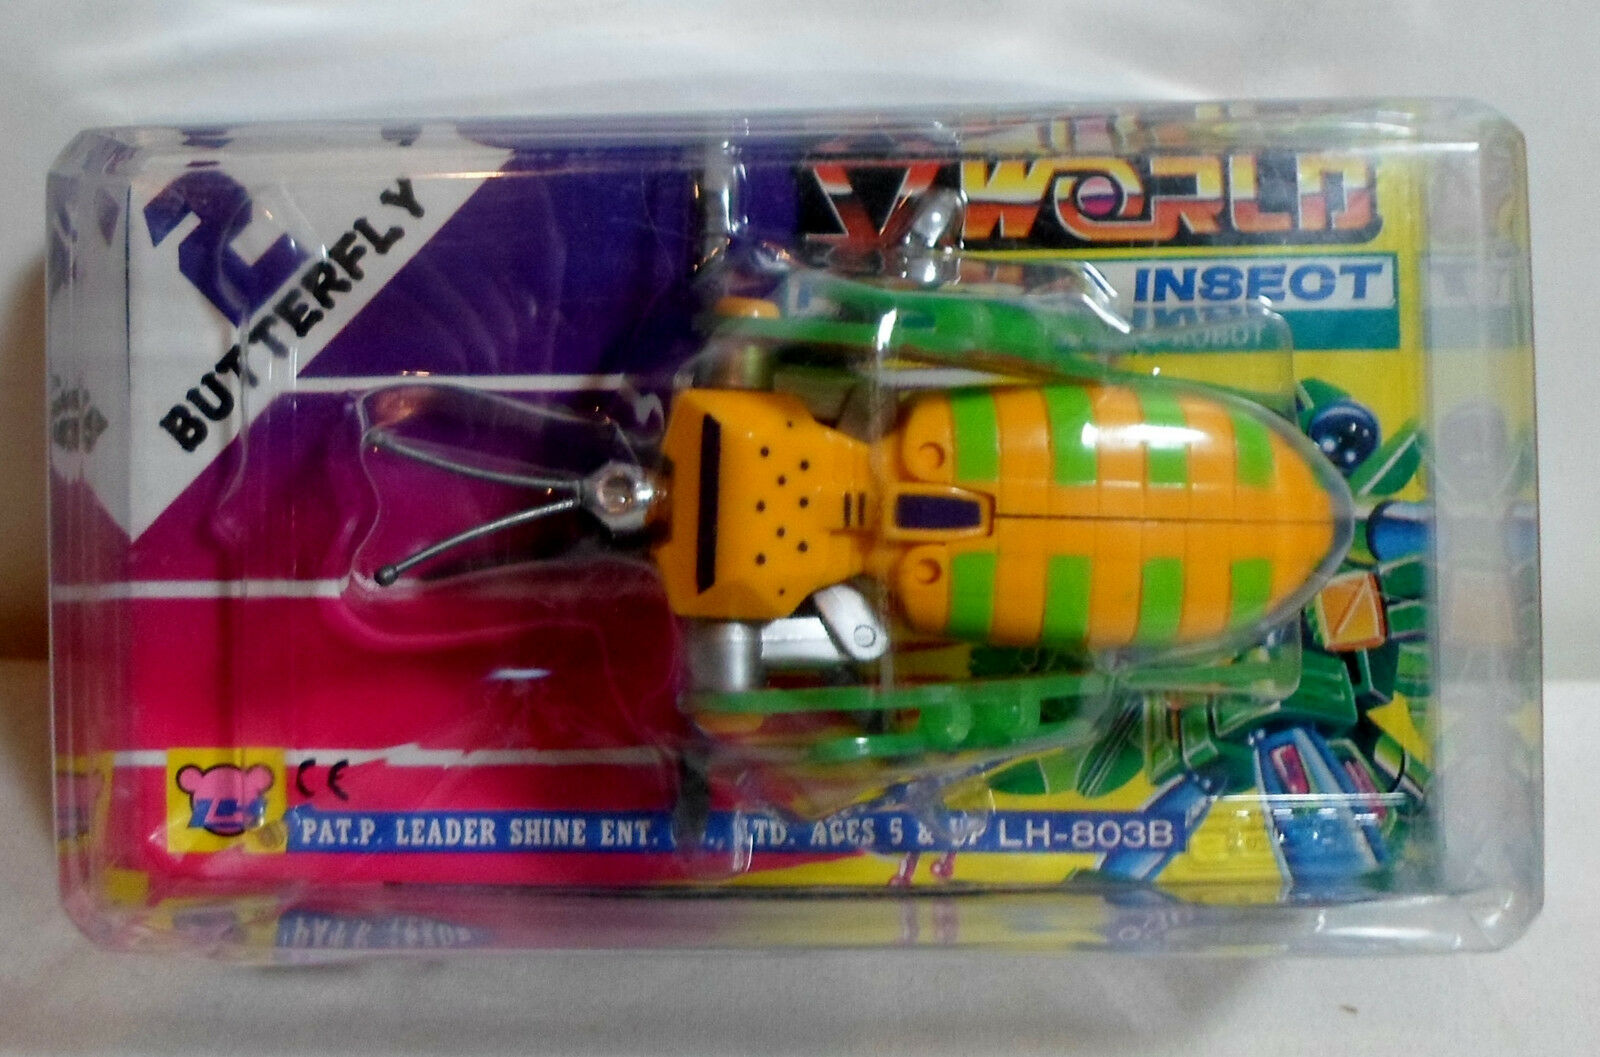 LH VTG 80's V WORLD FIGHTING INSECT 2 - BUTTERFLY BUTTERFLY BUTTERFLY TRANSFORMER ROBOT MIP 4dc430